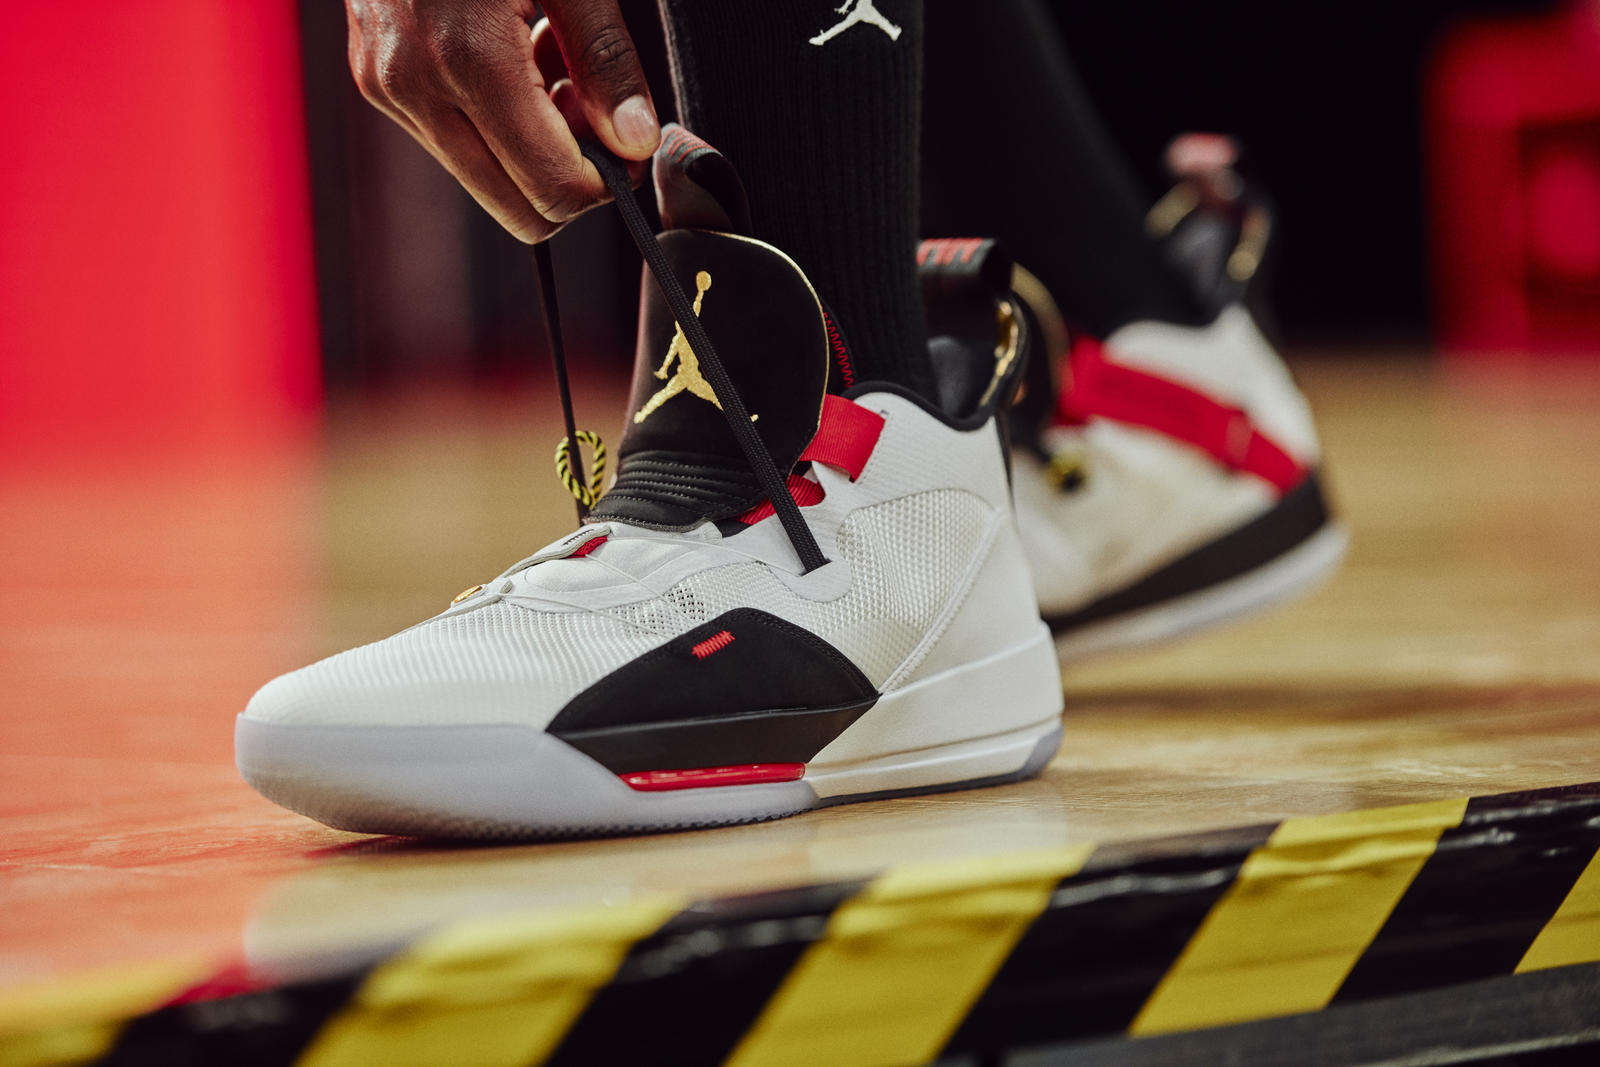 9d64959672bf Lock-In and Prepare to Fly with the Air Jordan XXXIII - Nike News